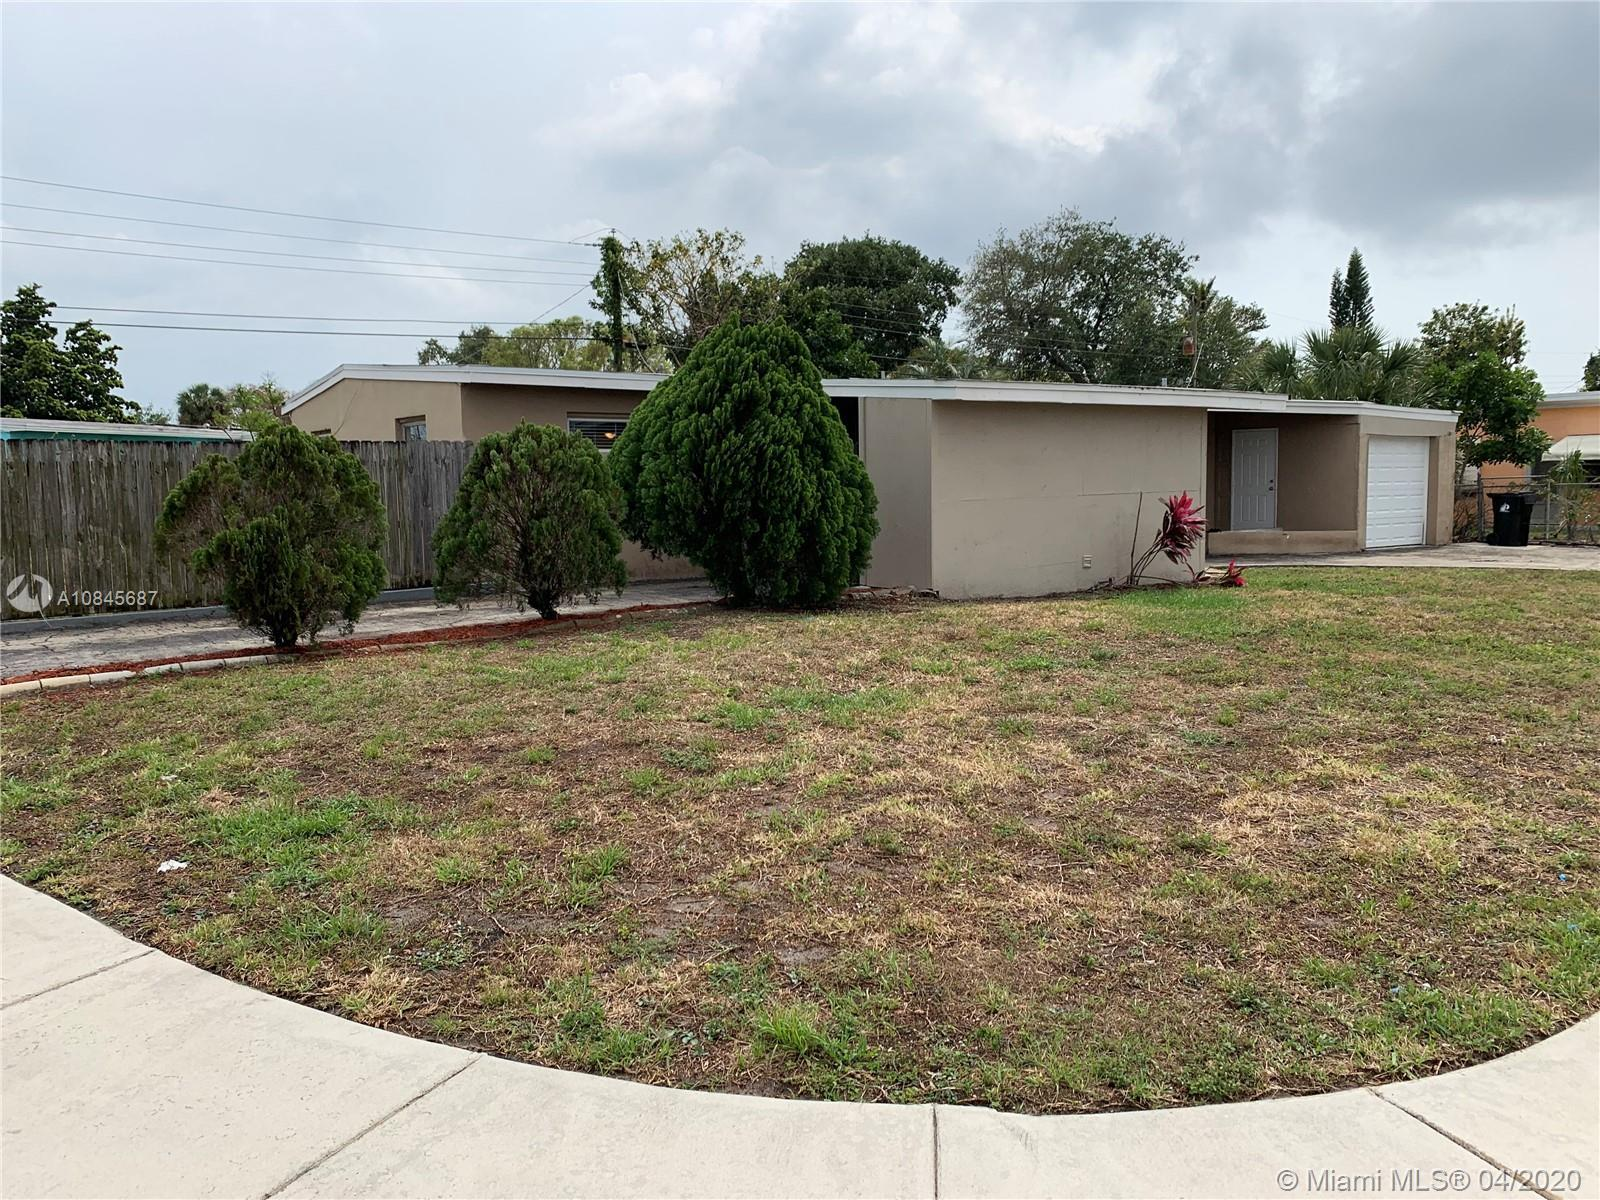 Beautiful 3 Bedroom 2 Bathroom corner lot home w/ large fenced in backyard plus room for a boat. The